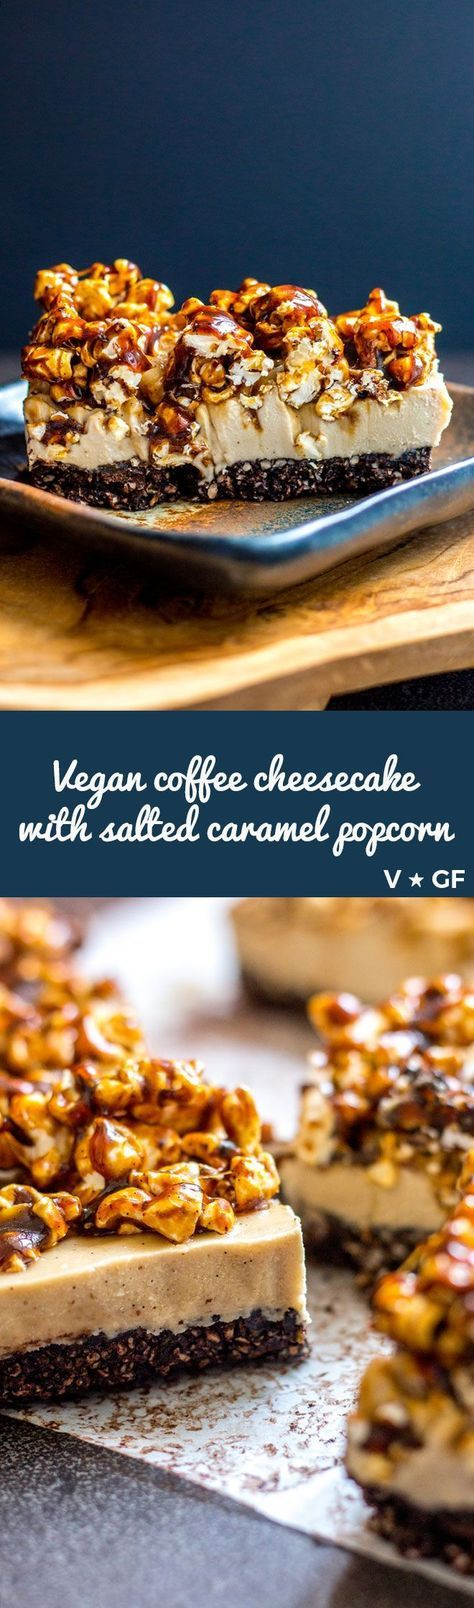 Creamy vegan coffee cheesecake topped with home made salted coconut caramel popcorn. Swoon. Vegan and gluten free.